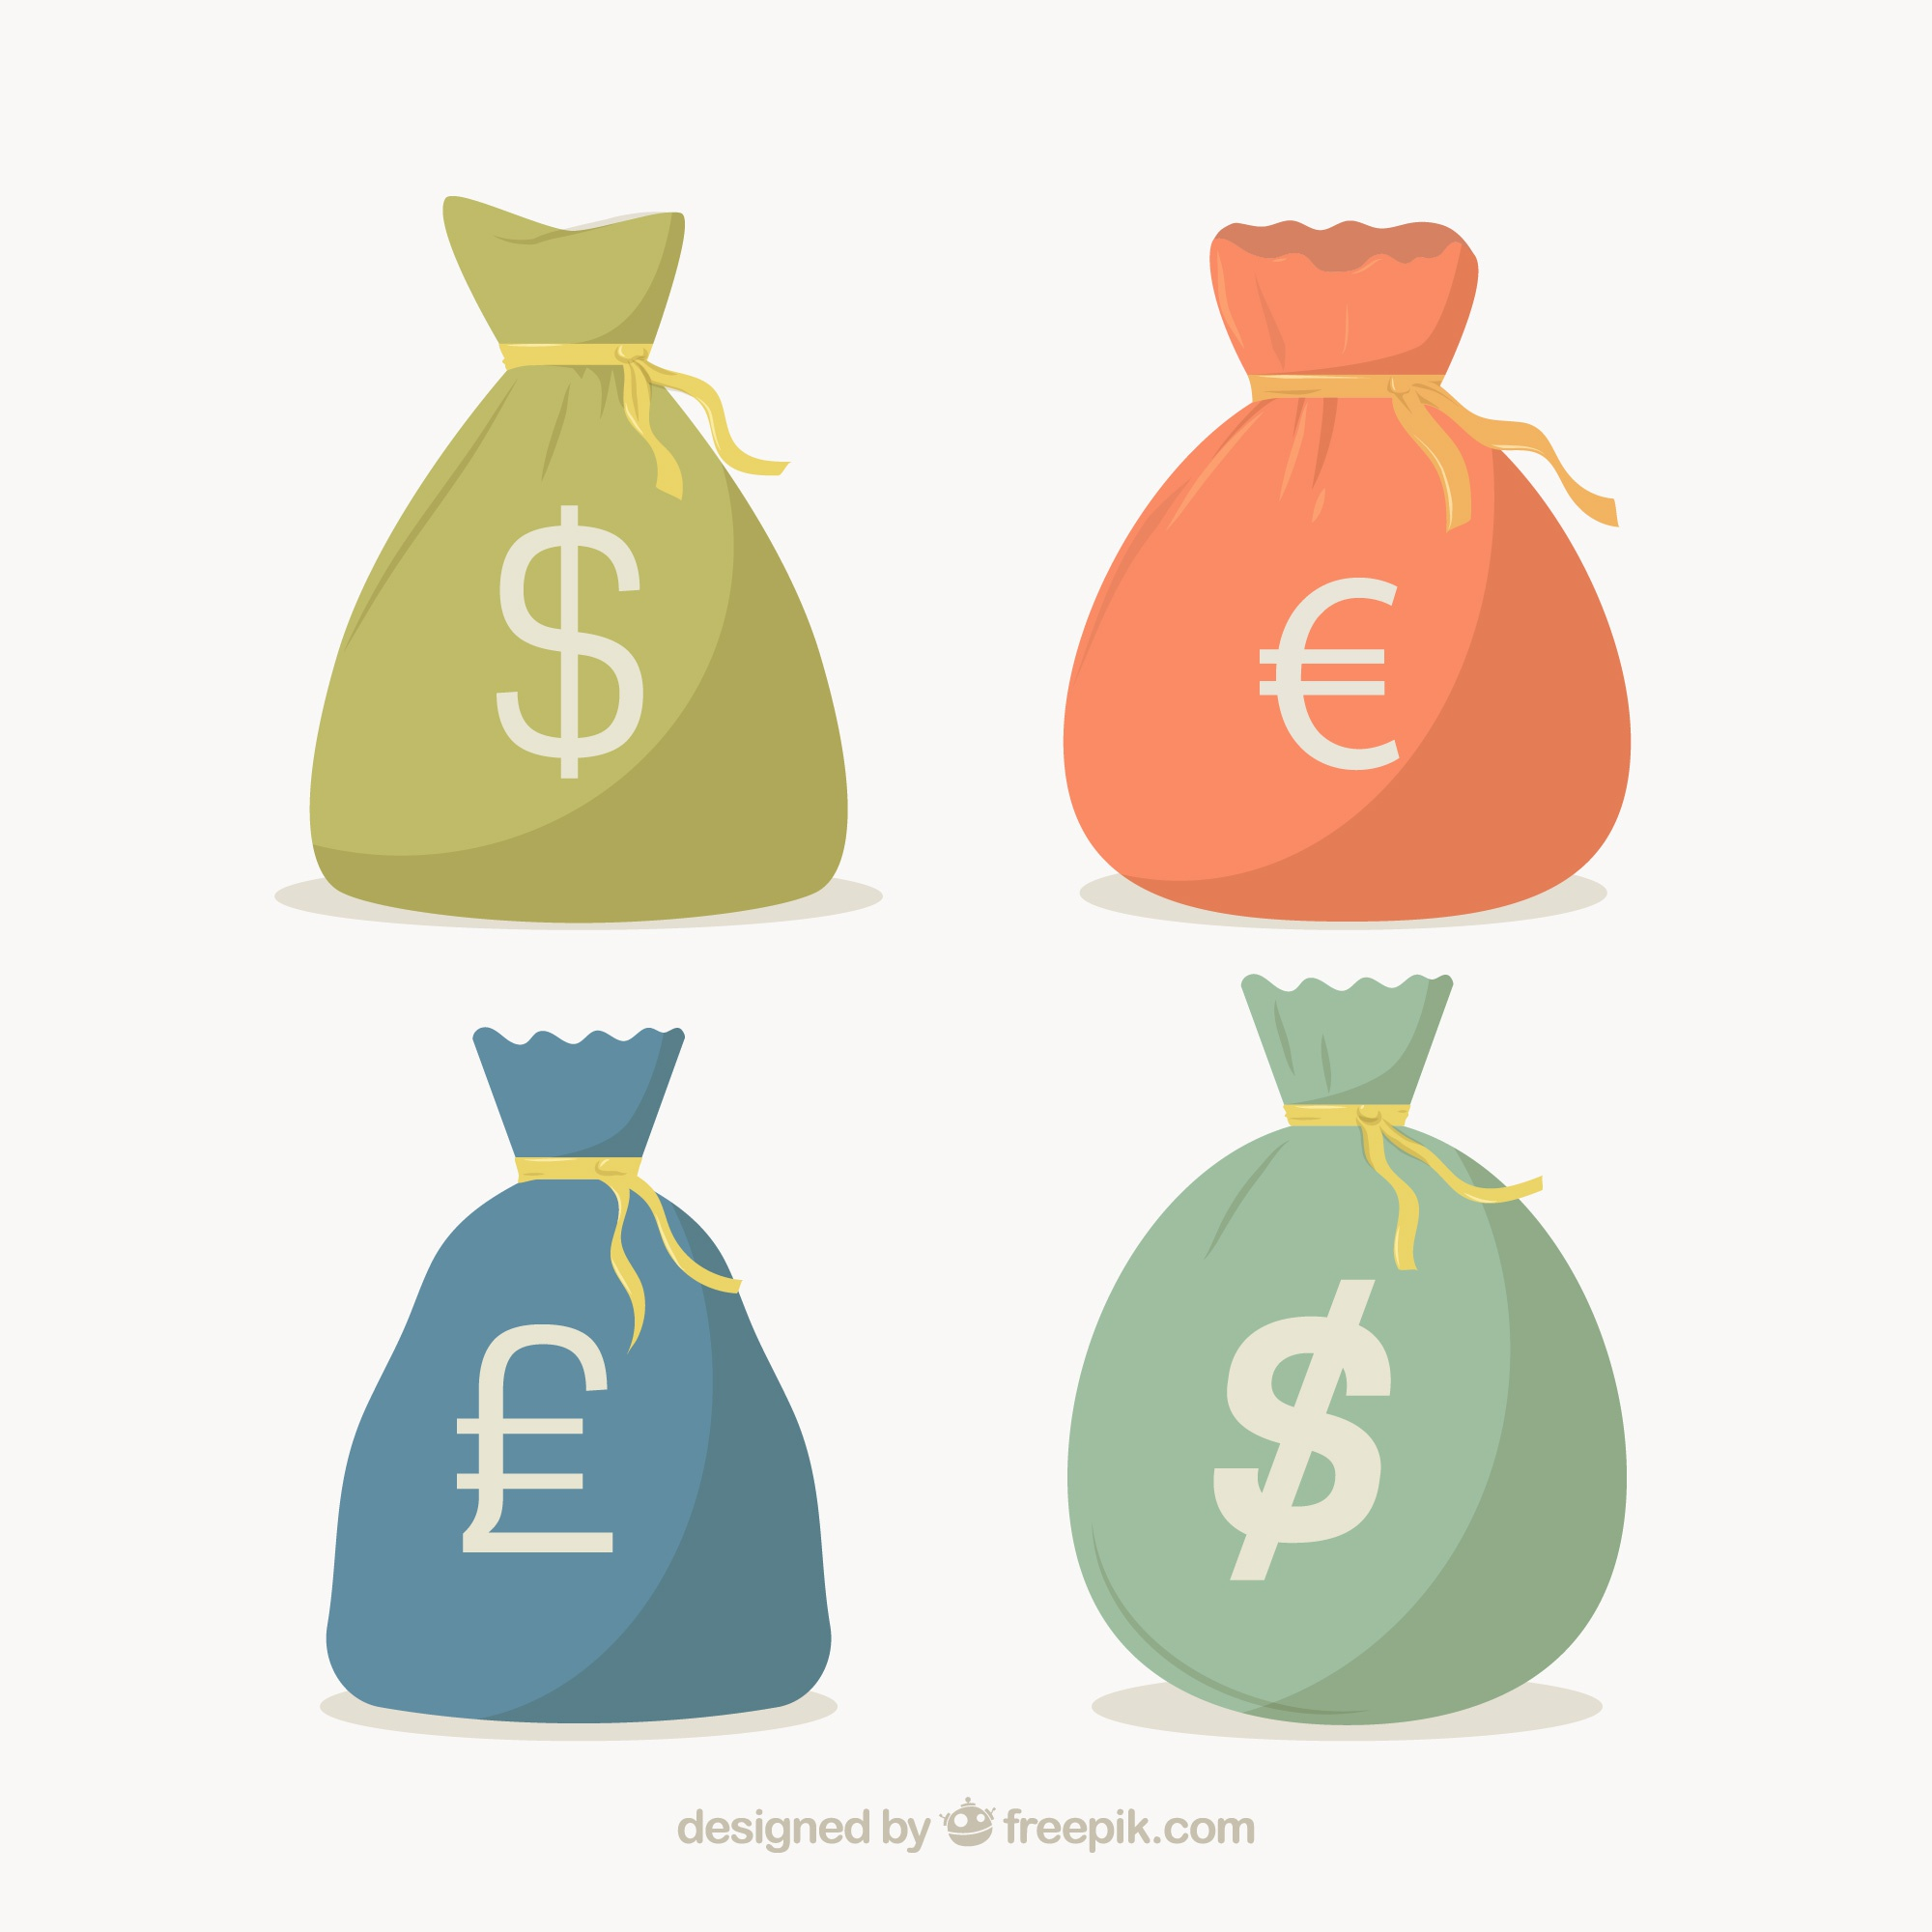 Pack of money bags with currency symbols